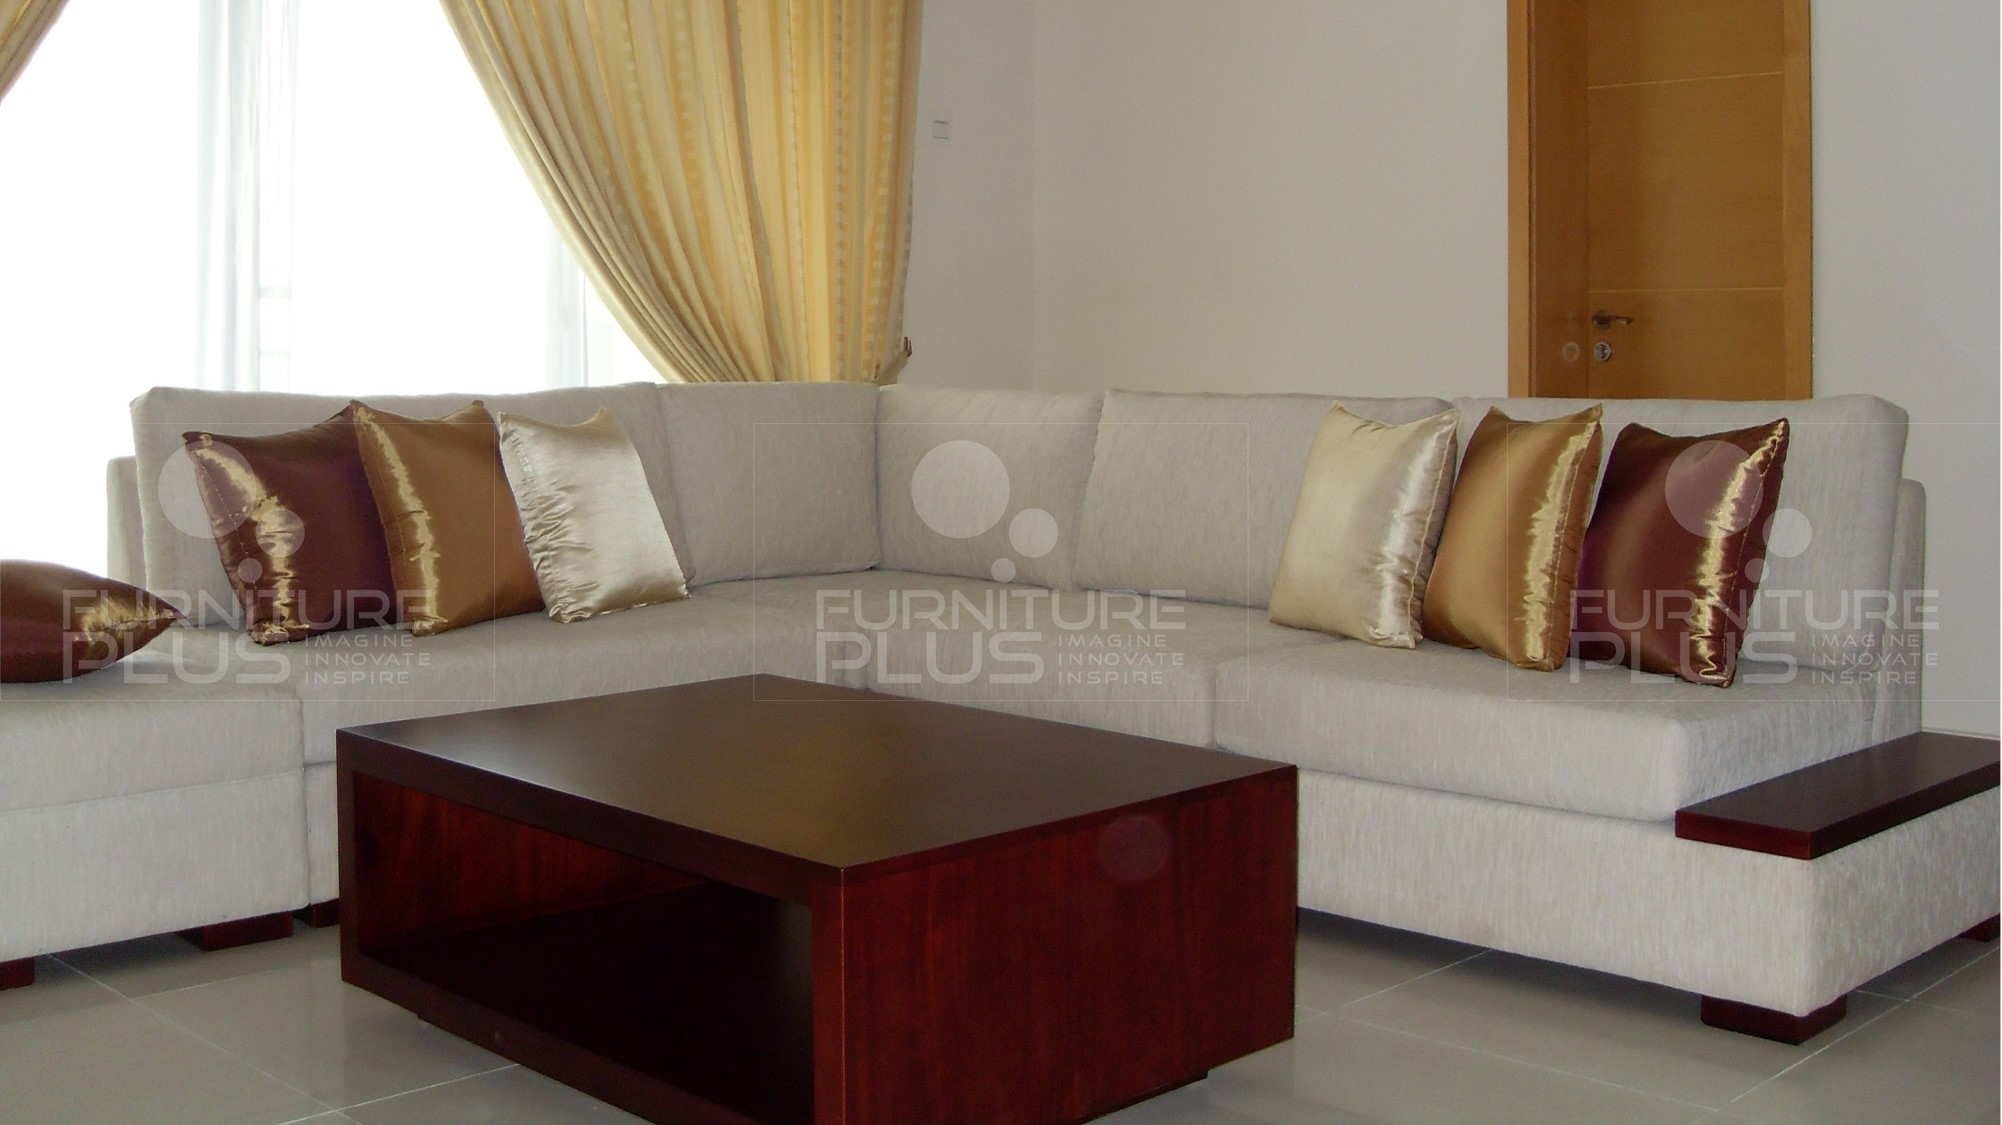 Salem L Shape Sofas Designers Manufacturers Furniture Plus Sri Lanka